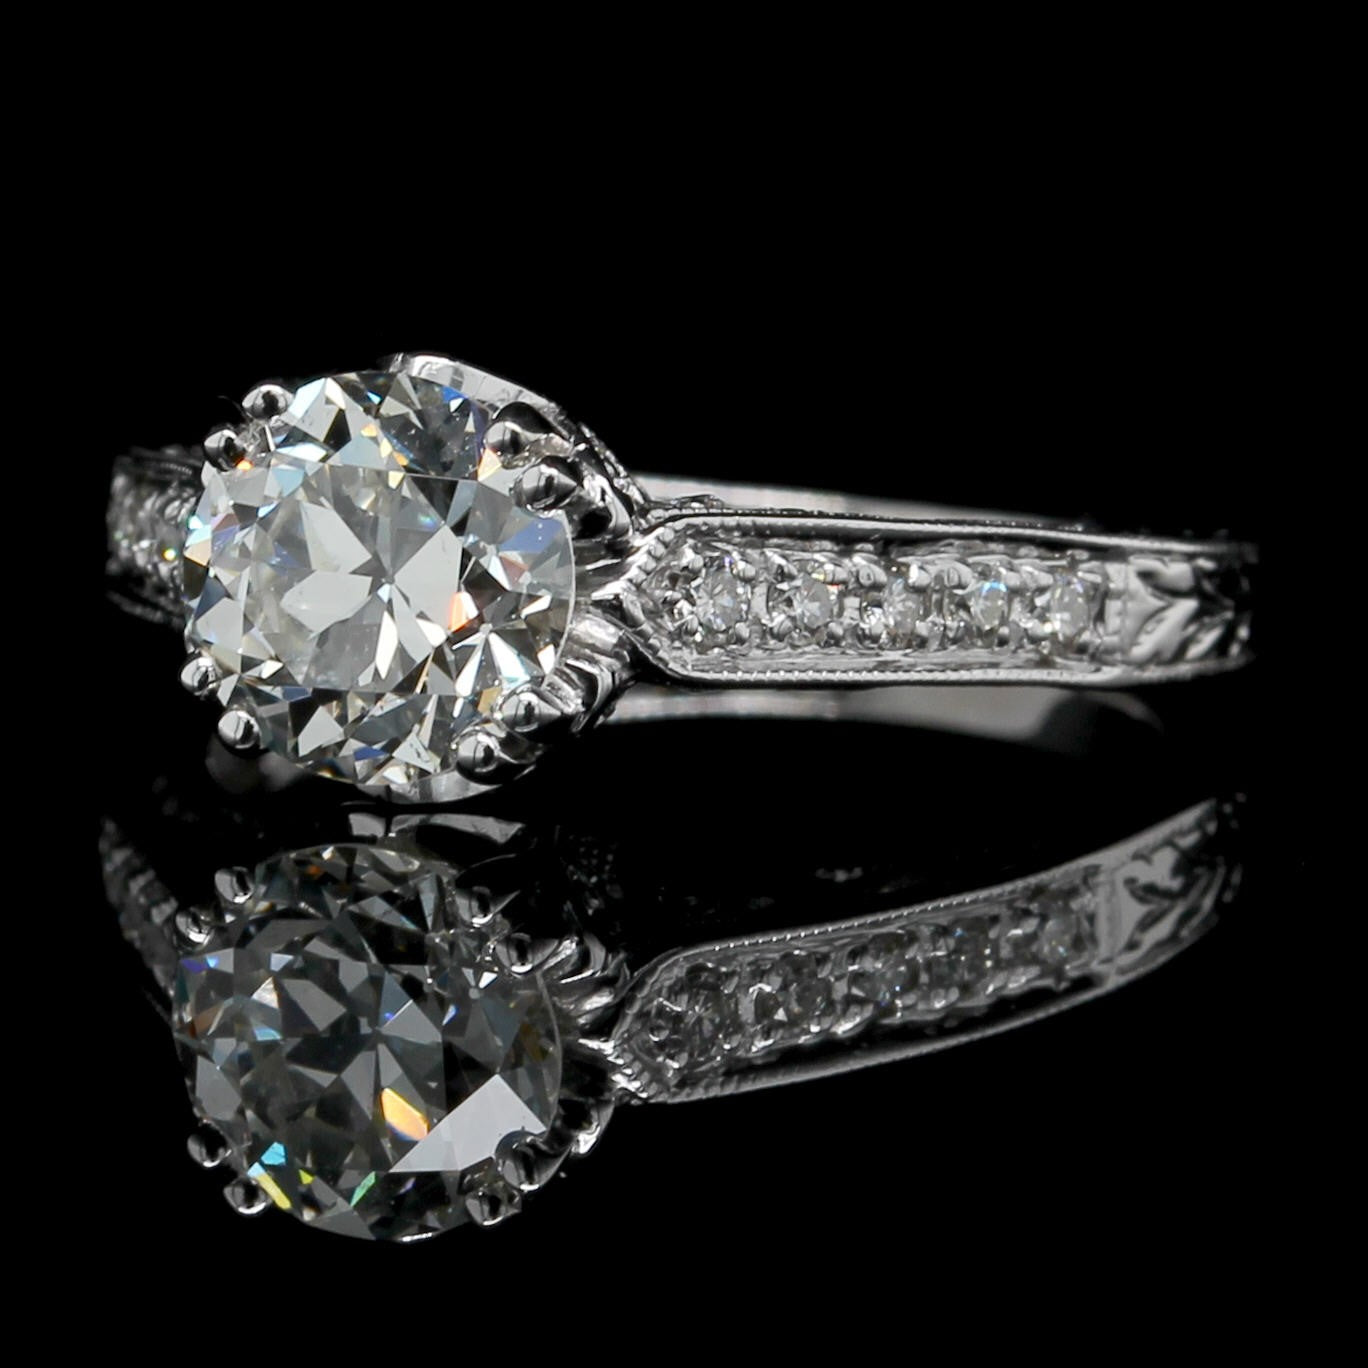 14K White Gold Diamond Old European Cut Solitaire Engagement Ring